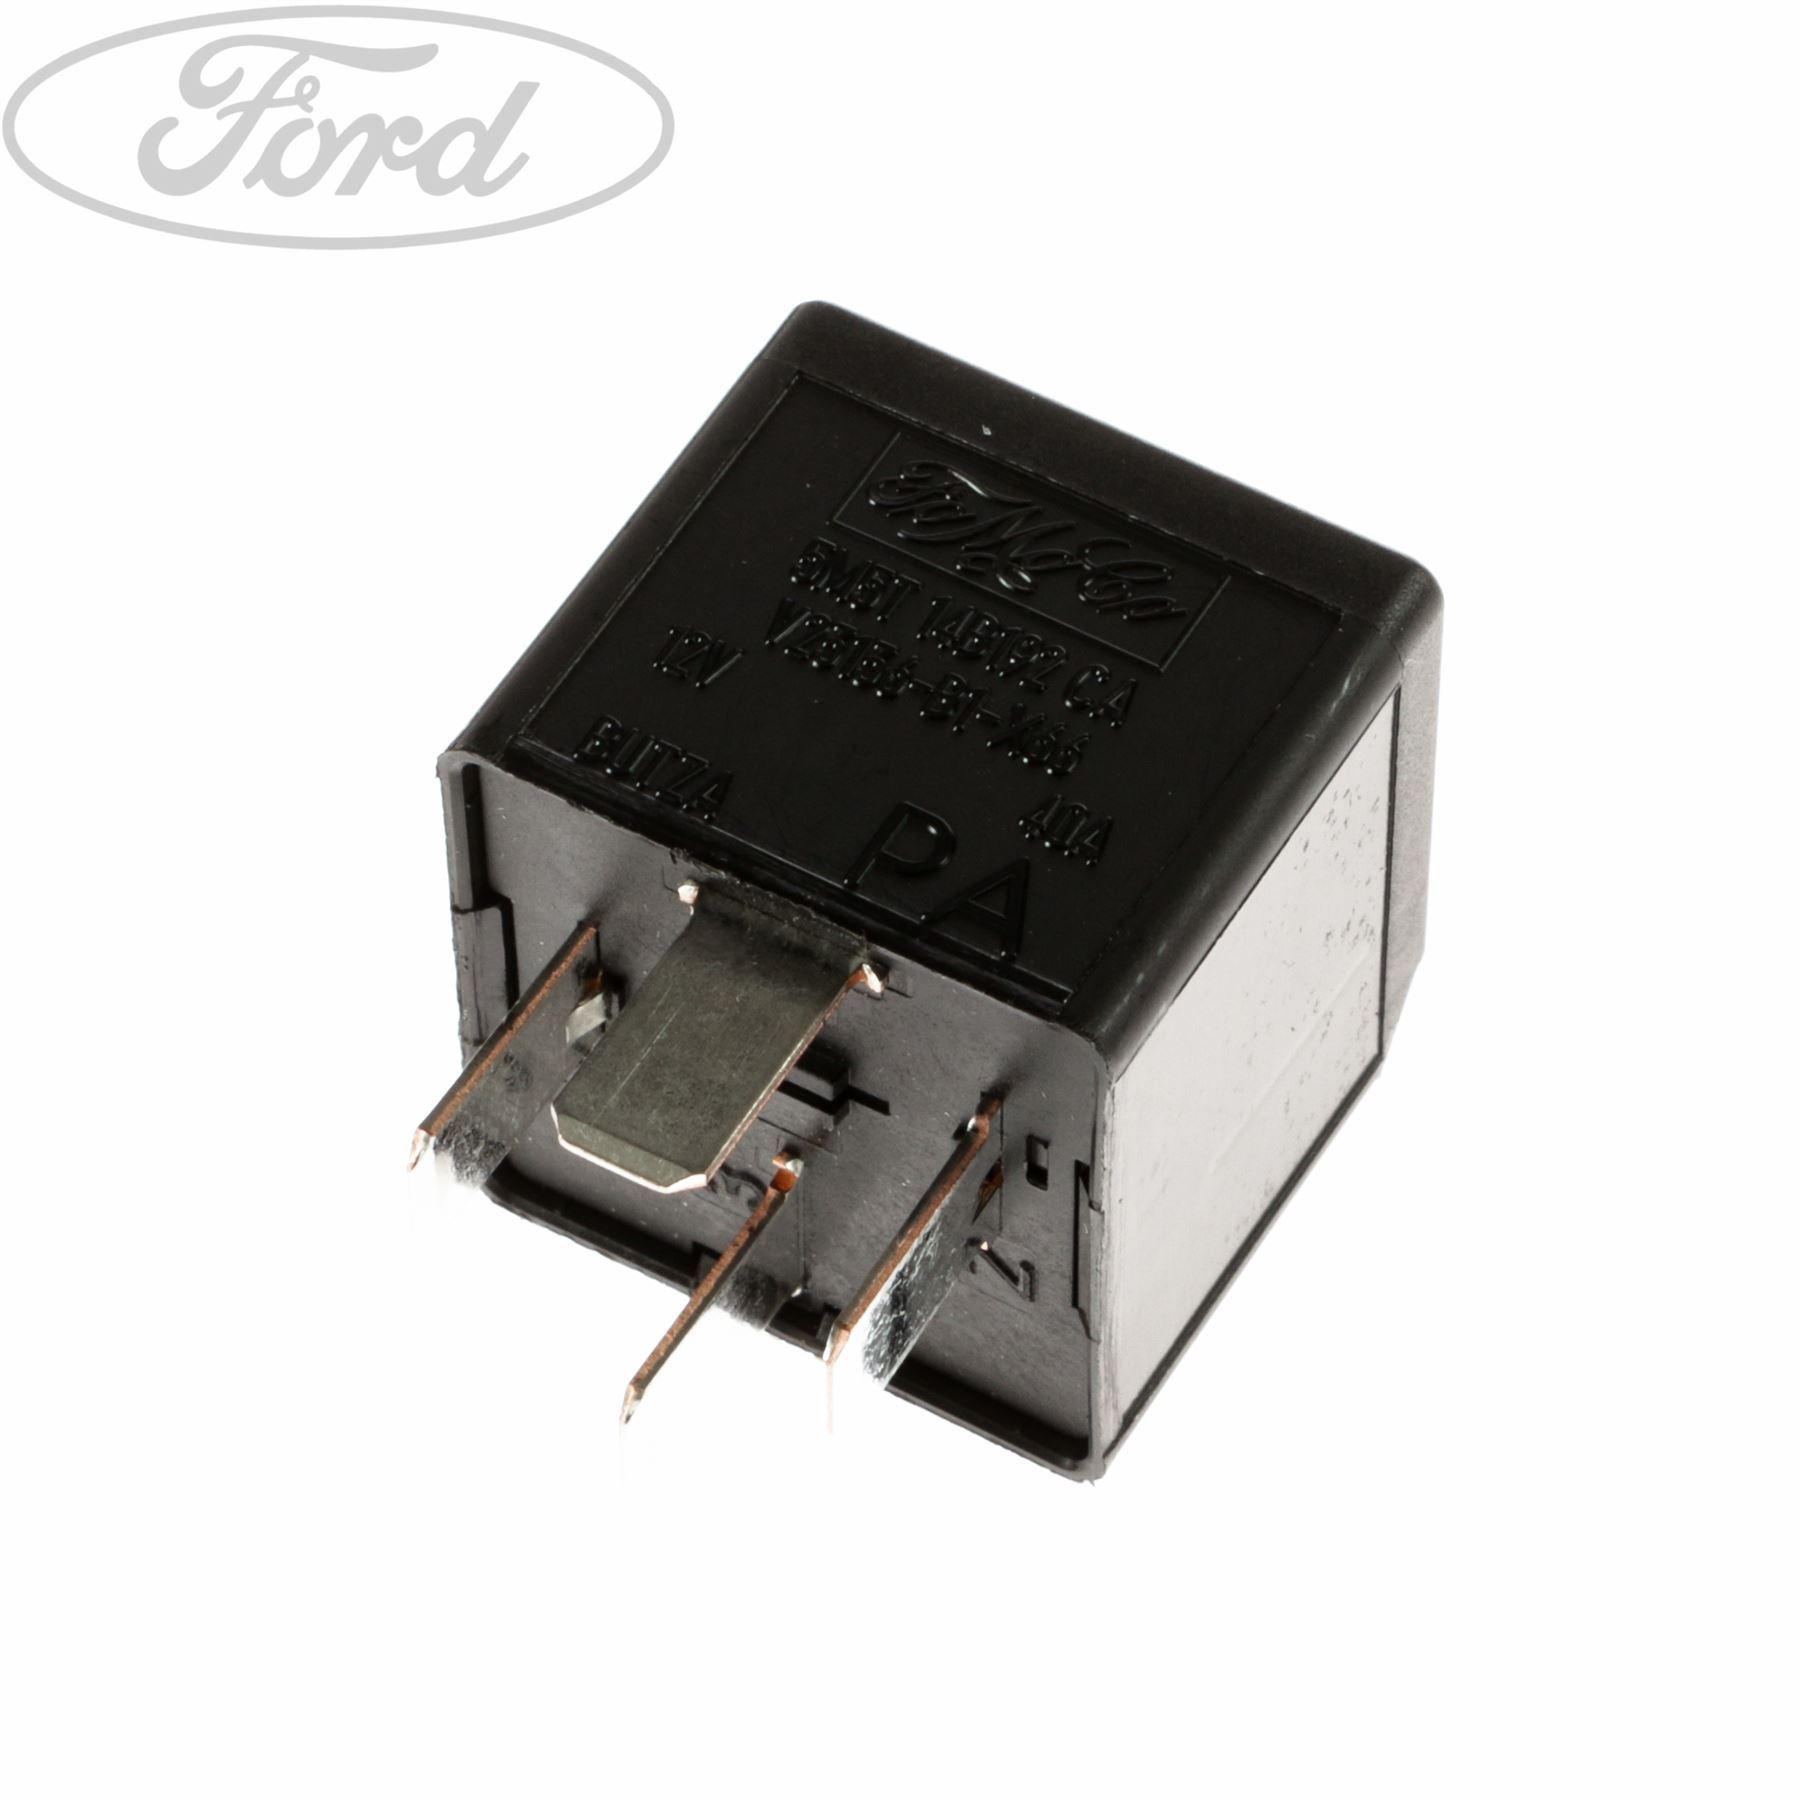 Genuine Ford Electrical System Micro Relay 40 Amp 4 Blade Terminal For Dummies 1425752